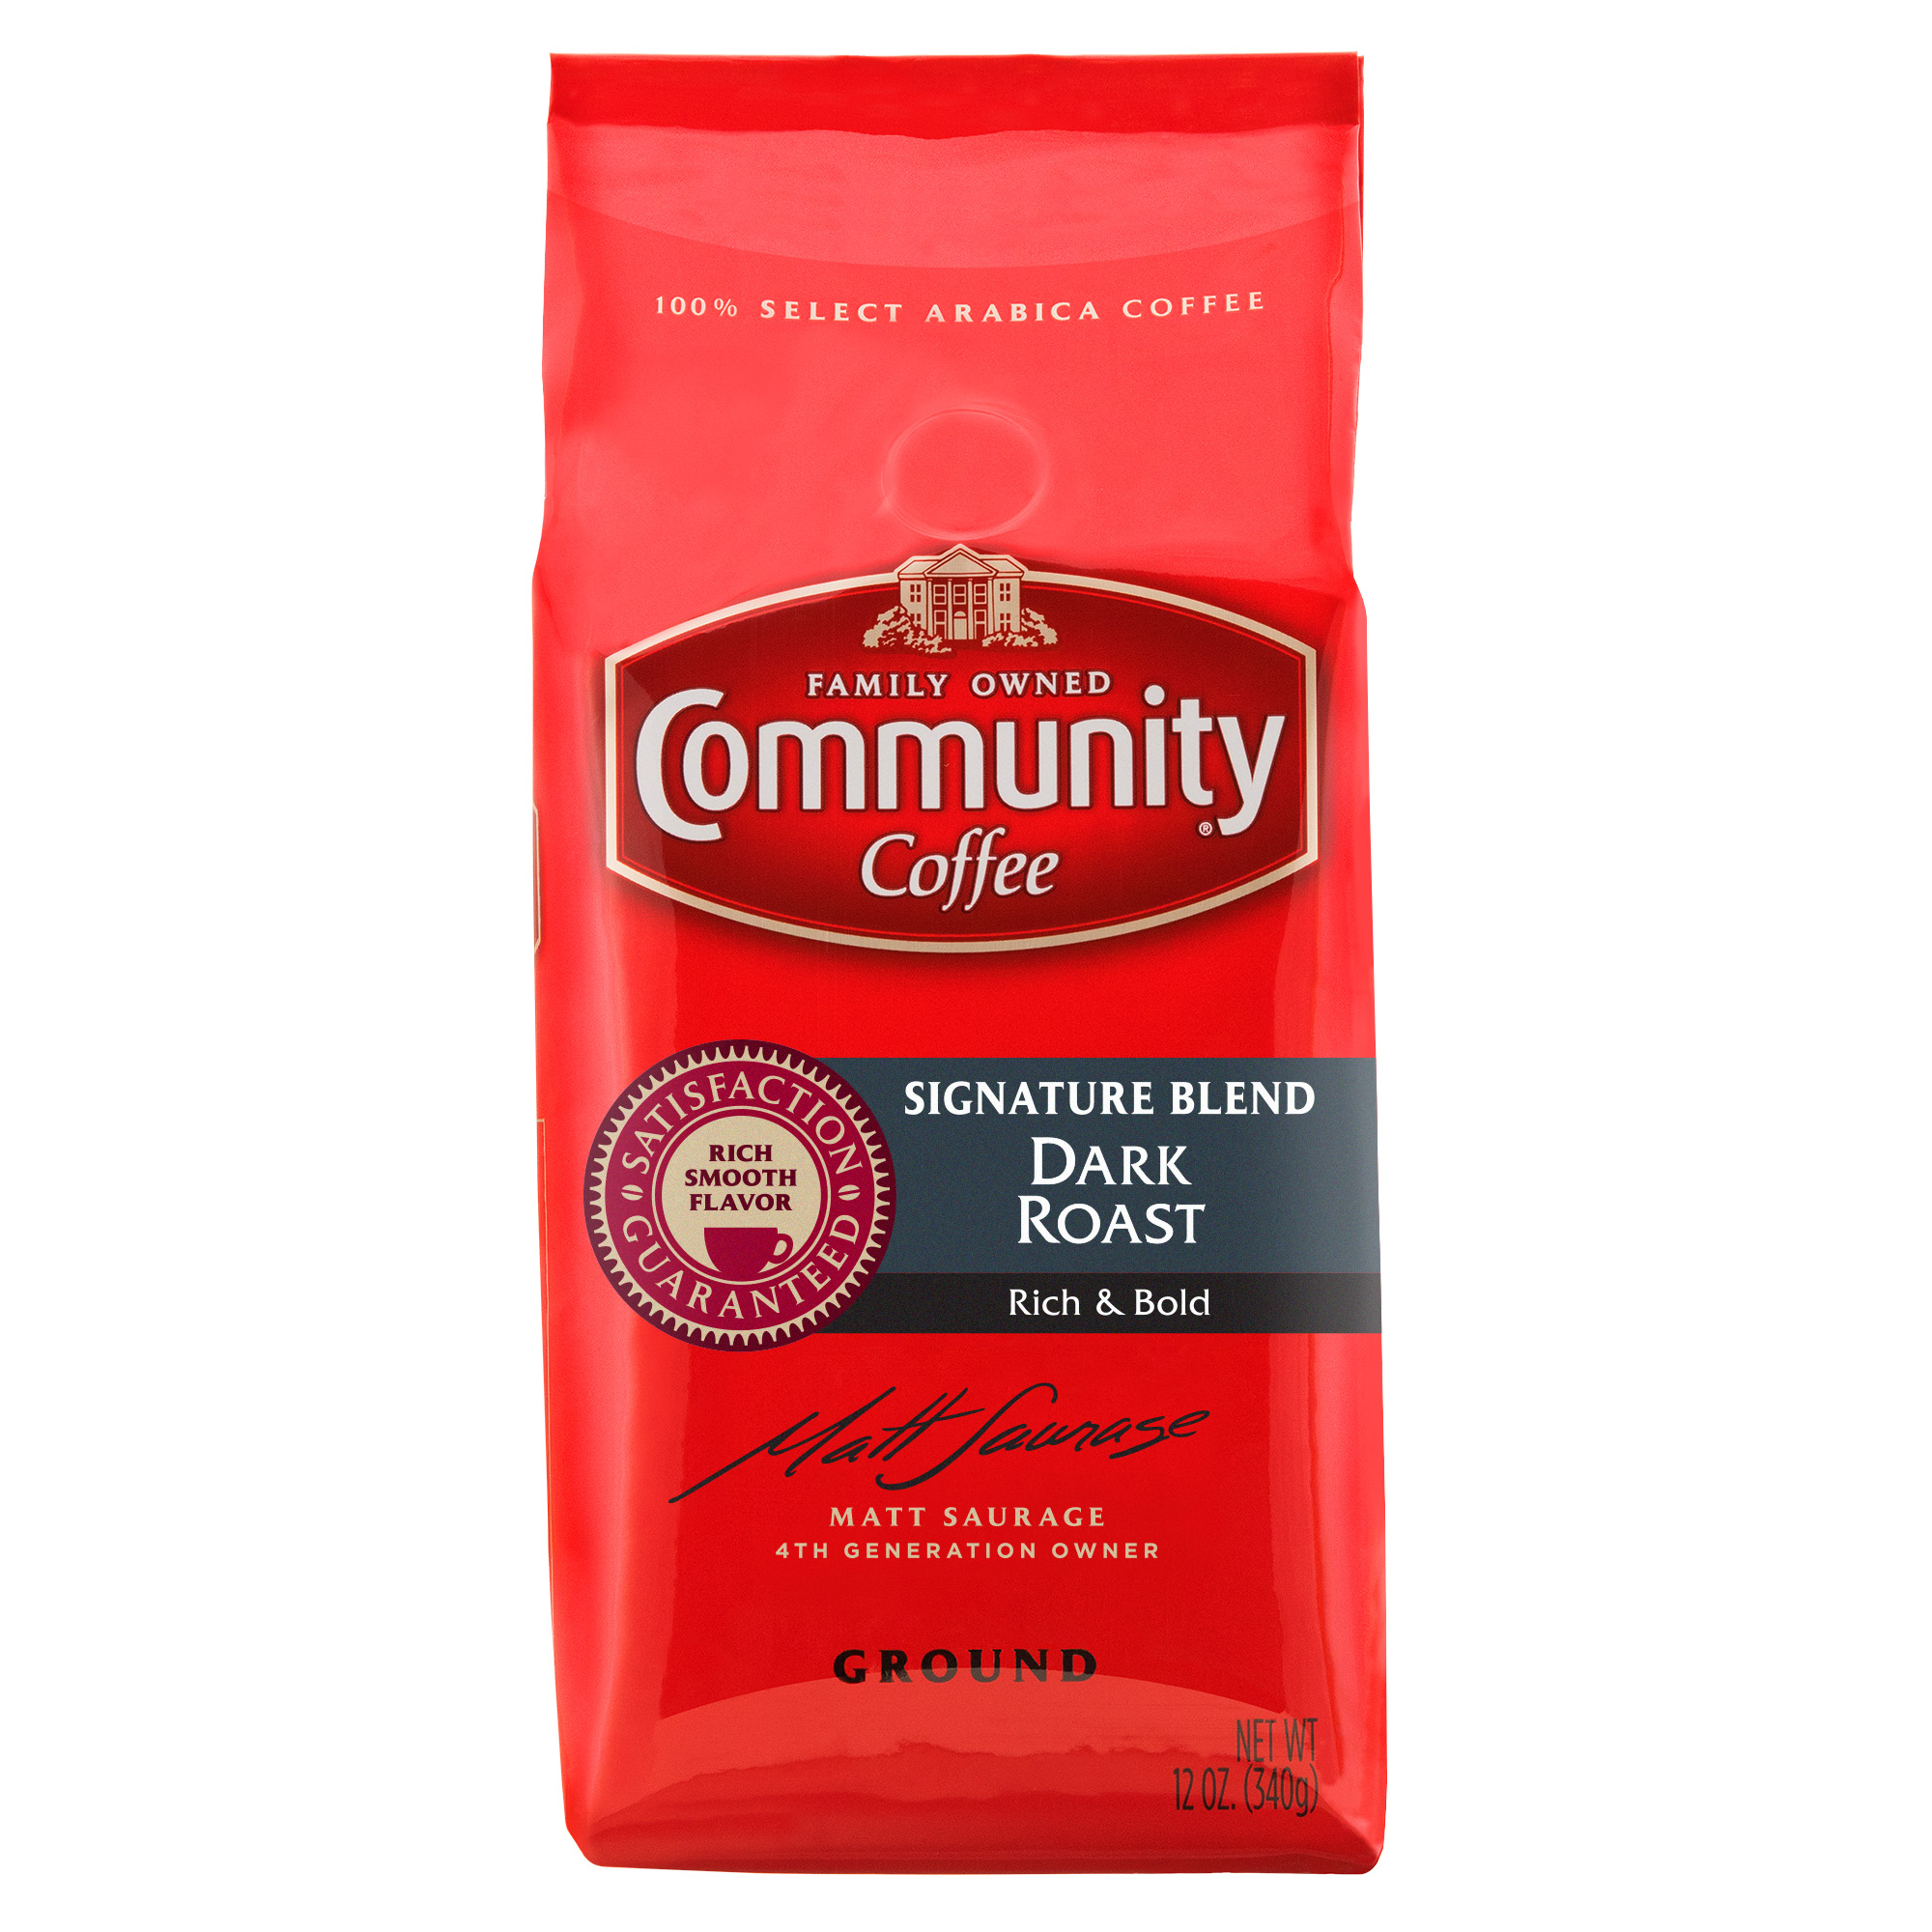 Community Coffee Premium Ground Signature Blend Dark Roast Coffee, 12 Ounce